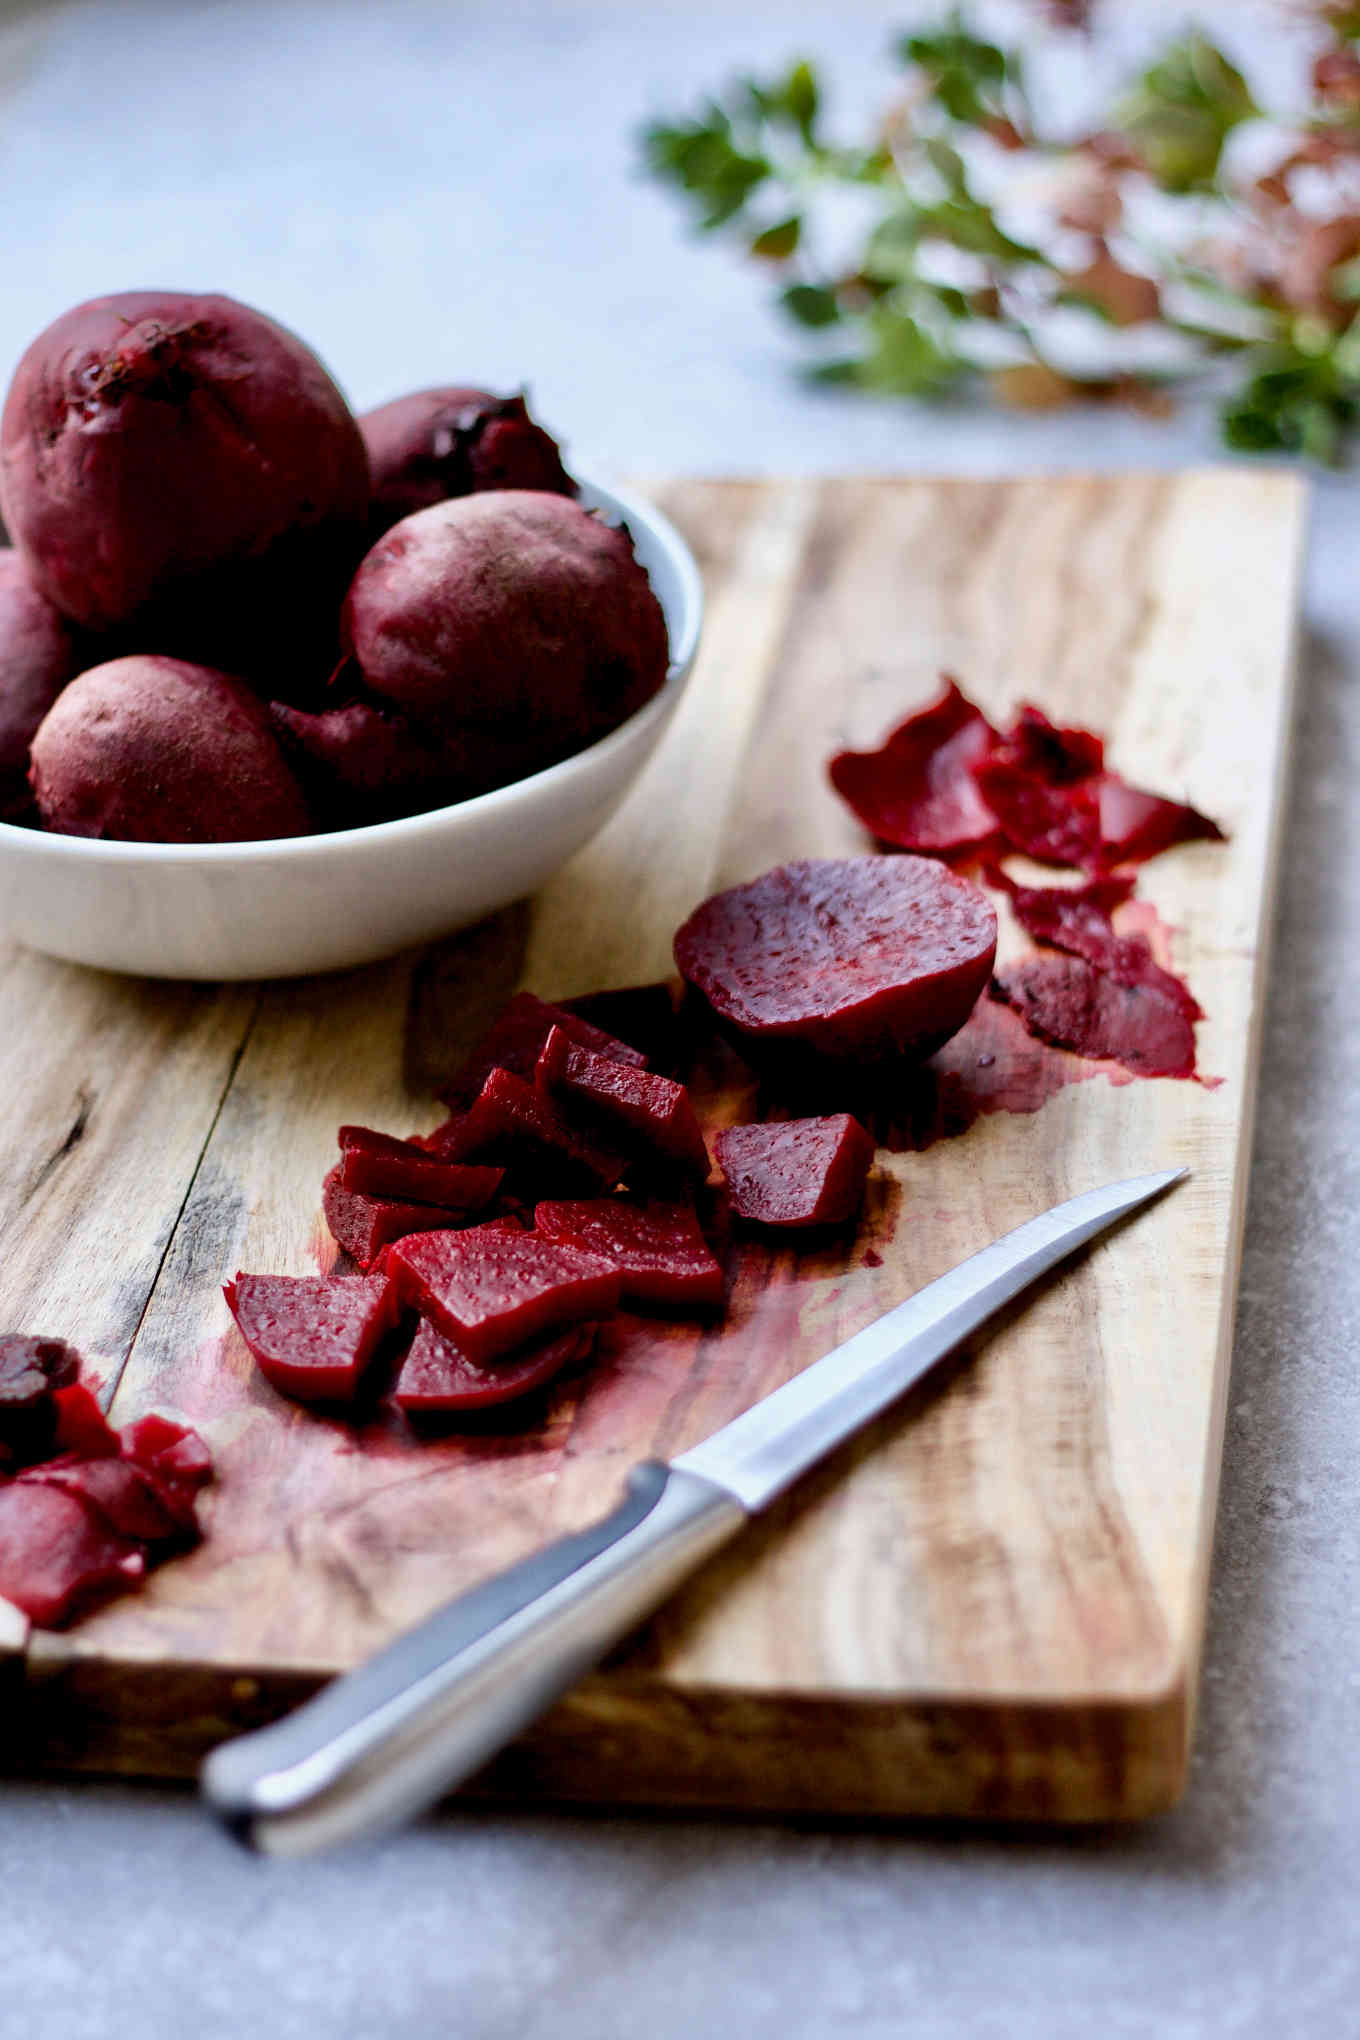 Instant Pot cooked beets in a bowl. Some beets have skin removed and cut into smaller pieces on the cutting board.